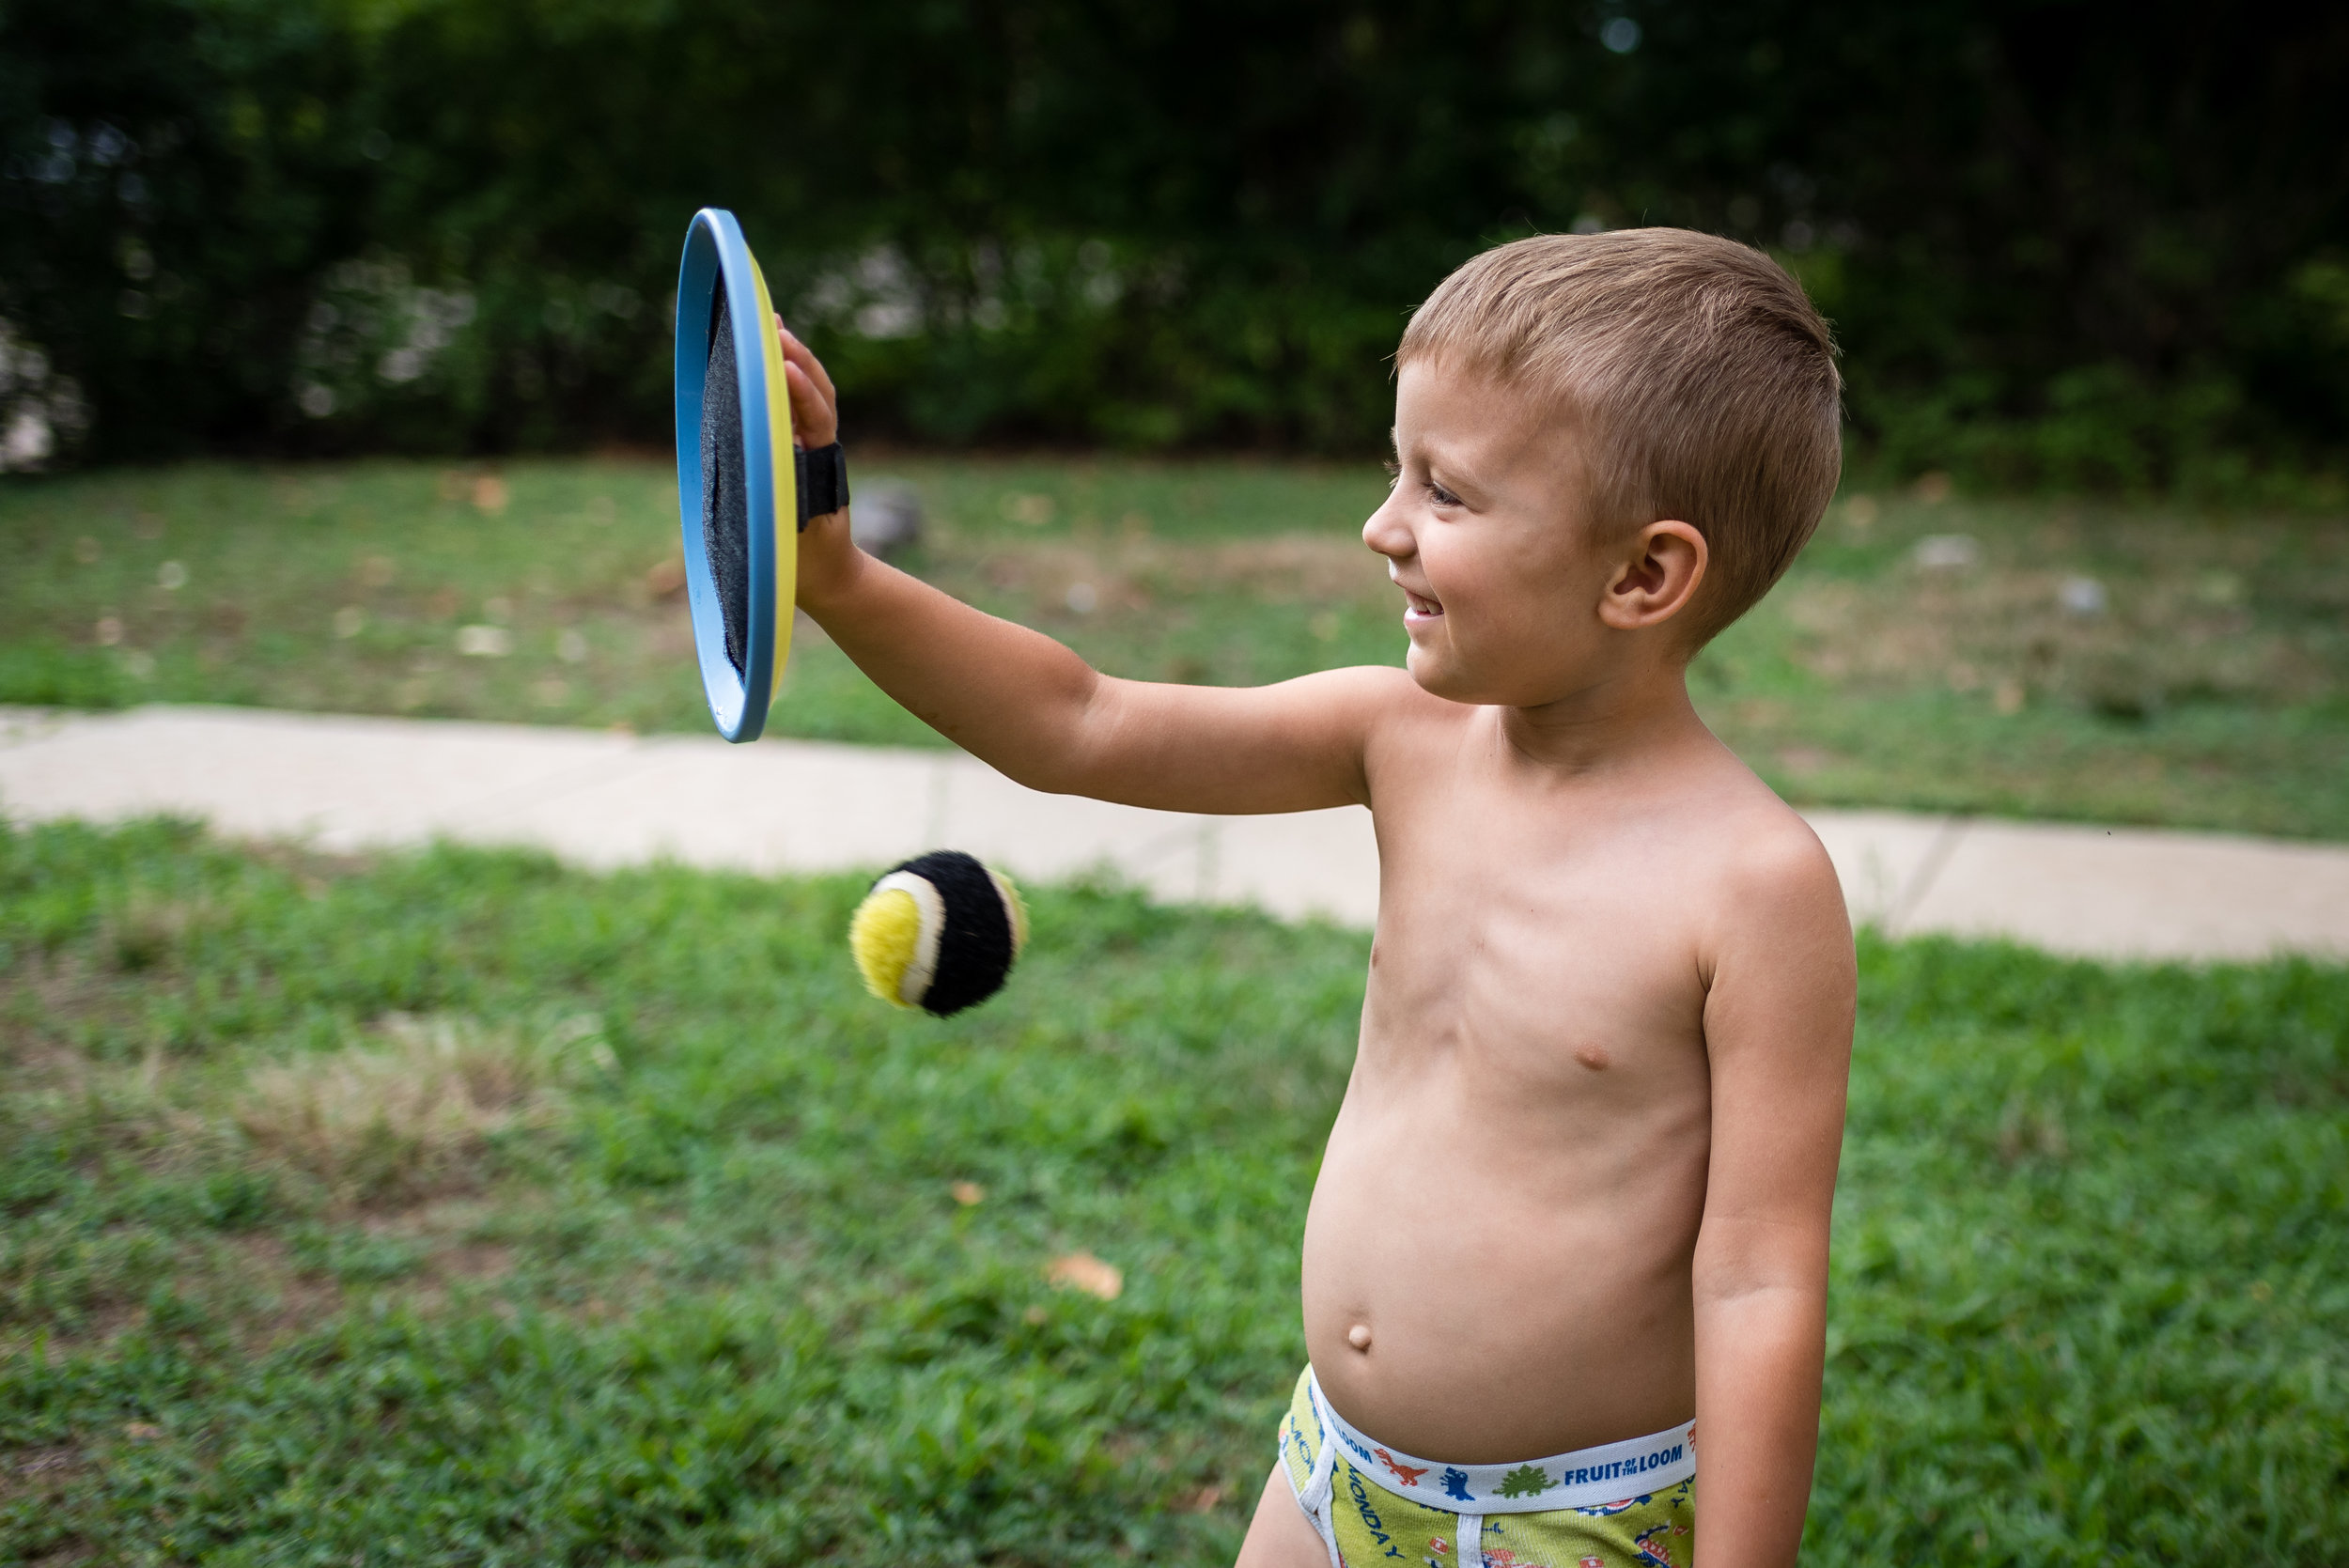 "We had a family gathering in Manhattan, Kansas this summer. We had an awesome time and made many memories! Nothing better than being with family. I took many great photos from the six days we were together, but this one puts a smile on my face. Sharon was playing catch with Benaiah with this ""old school"" velcro disc and ball. Benaiah could catch the ball as long as Sharon threw it right at his disc. If not, the ball would hit him. This picture reminds me that life is filled with bumps, bruises and surprises. Benaiah has so much to learn. But with skill, practice and experience, he will learn to handle the challenges that life tosses at him."